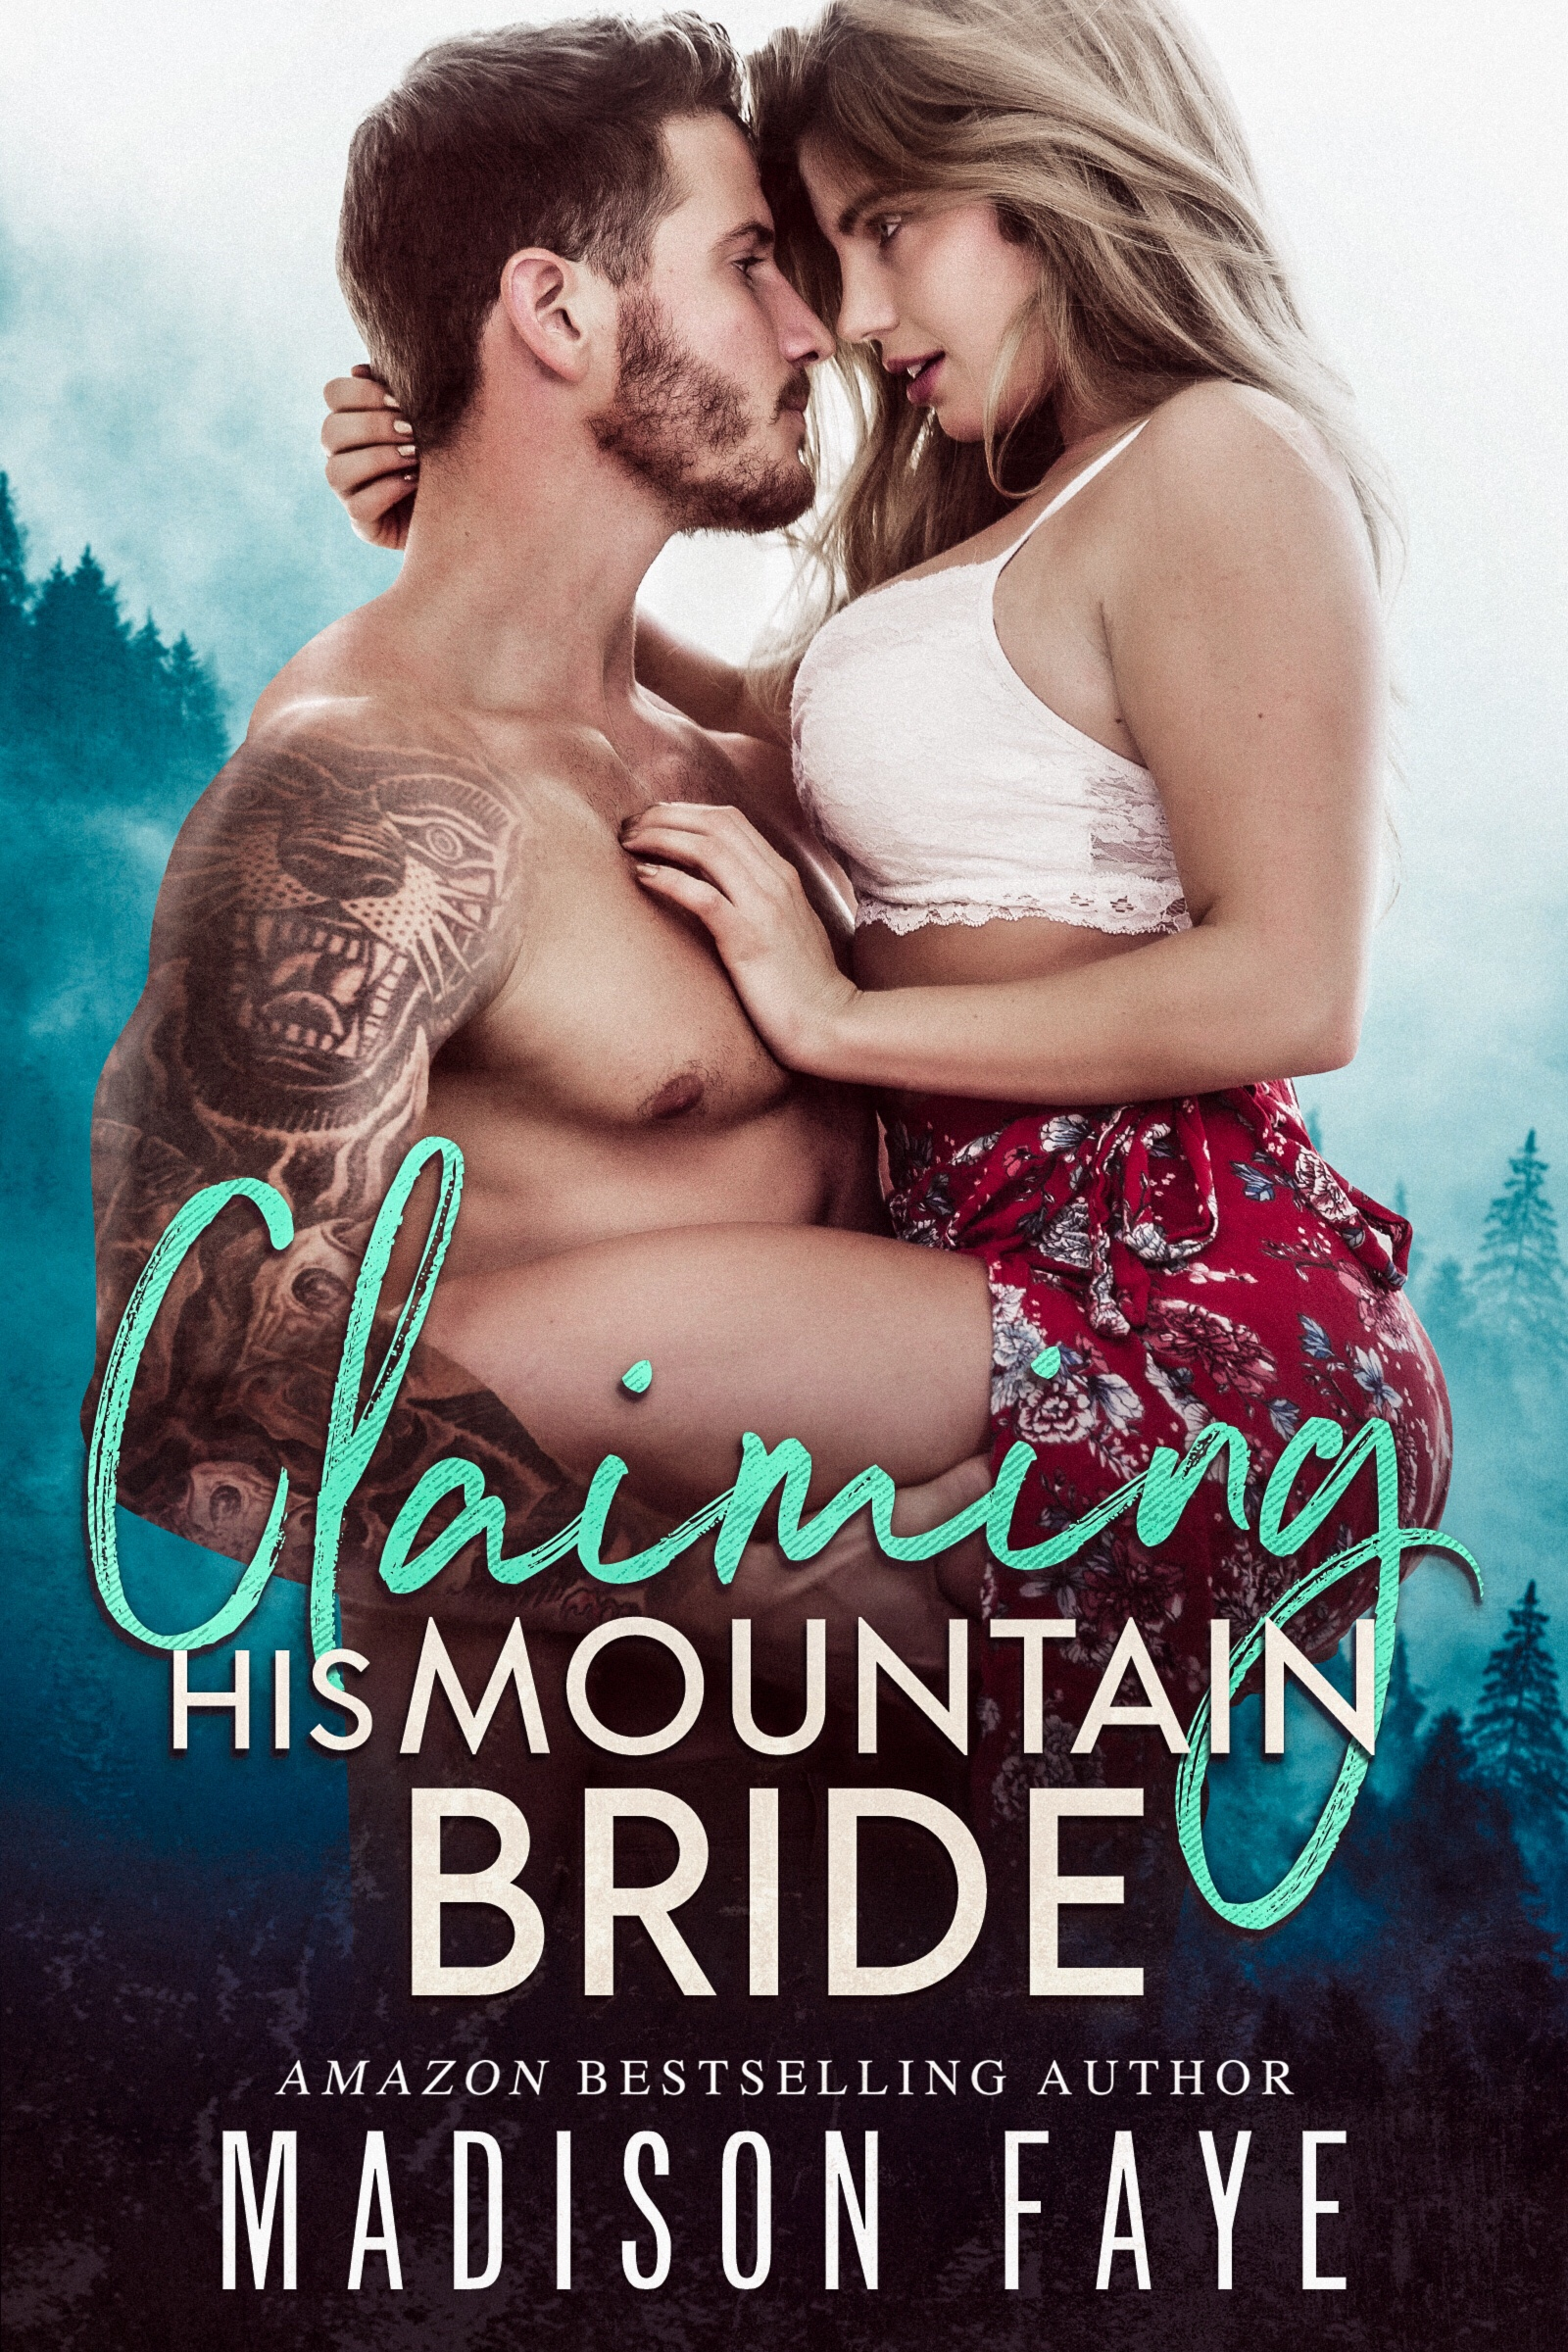 CLAIMING HIS MOUNTAIN BRIDE by Madison Faye